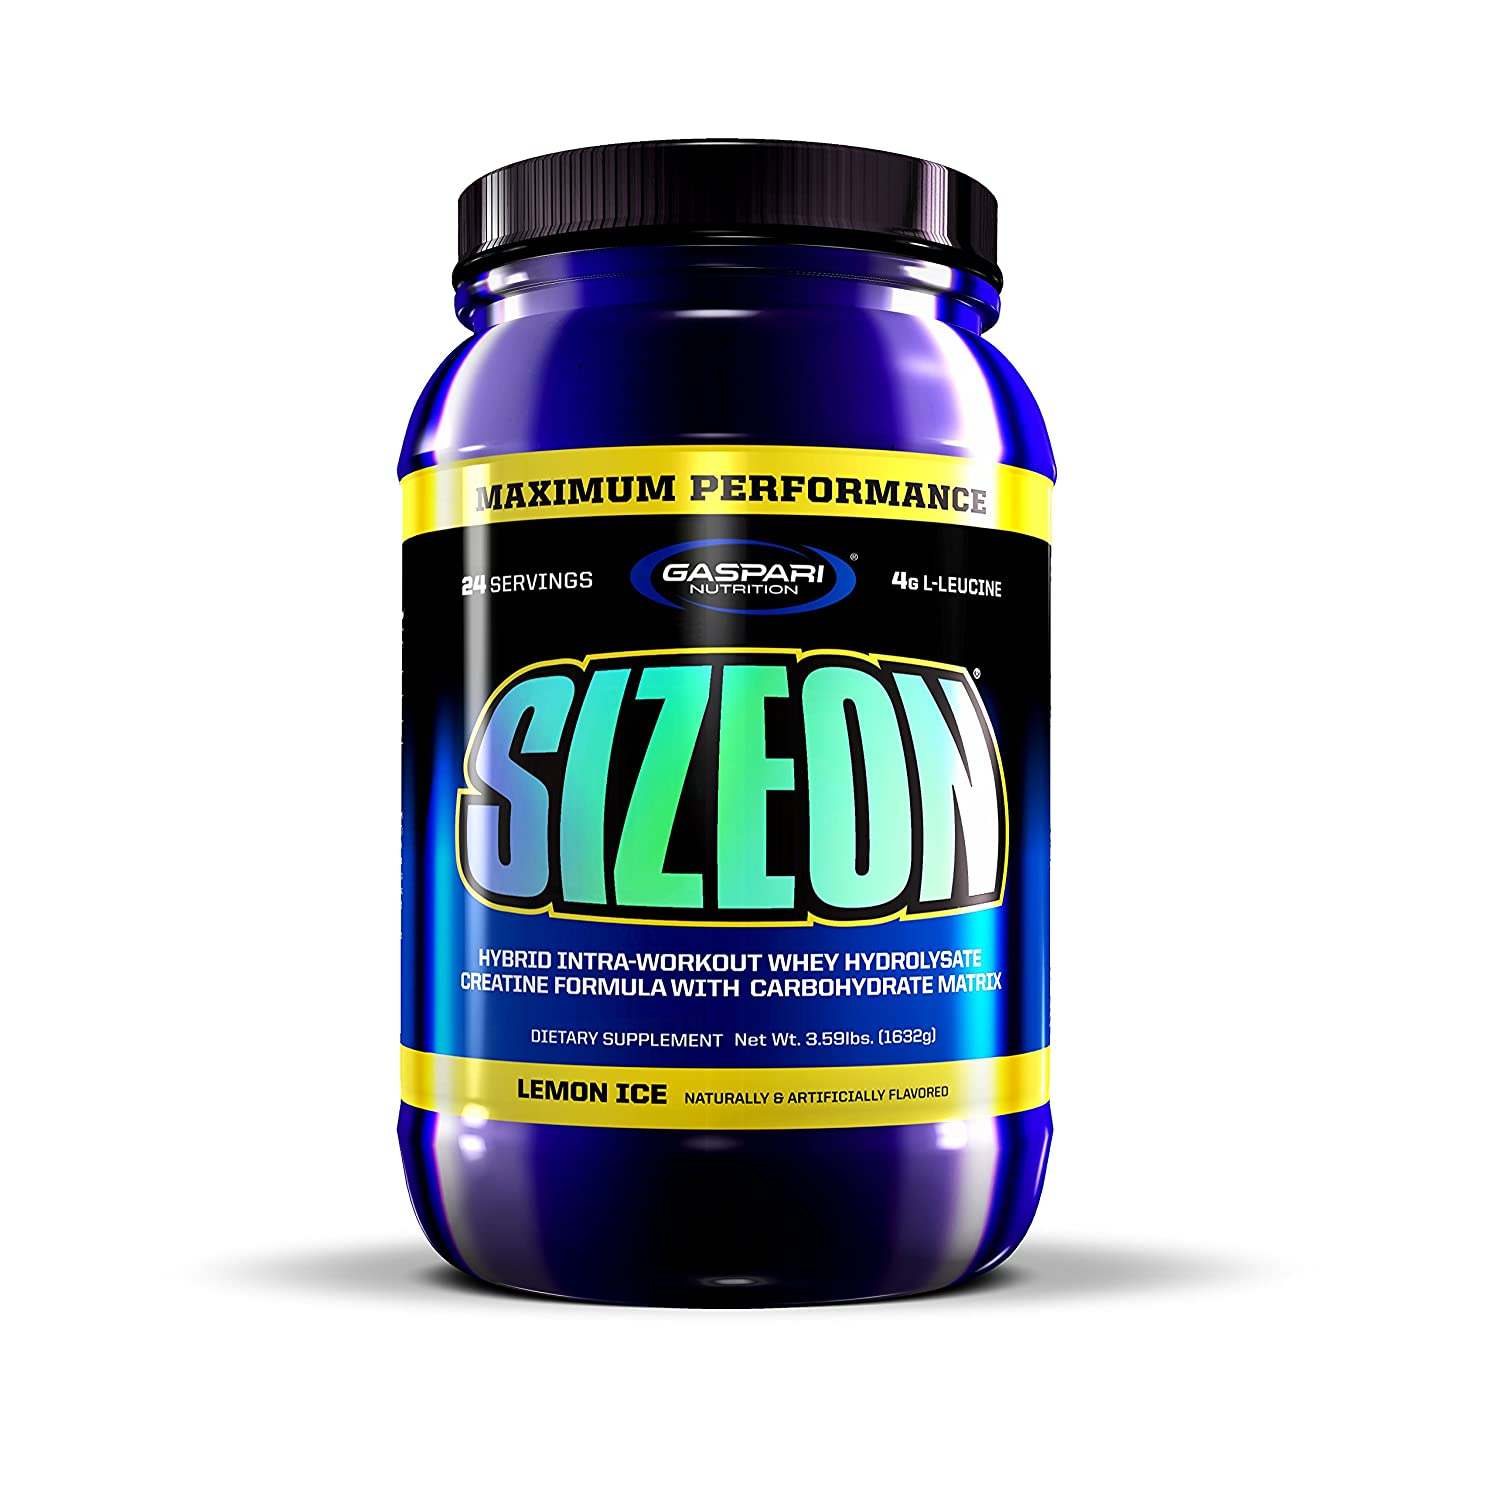 Product thumbnail for Gaspari Nutrition Sizeon Maximum Performance